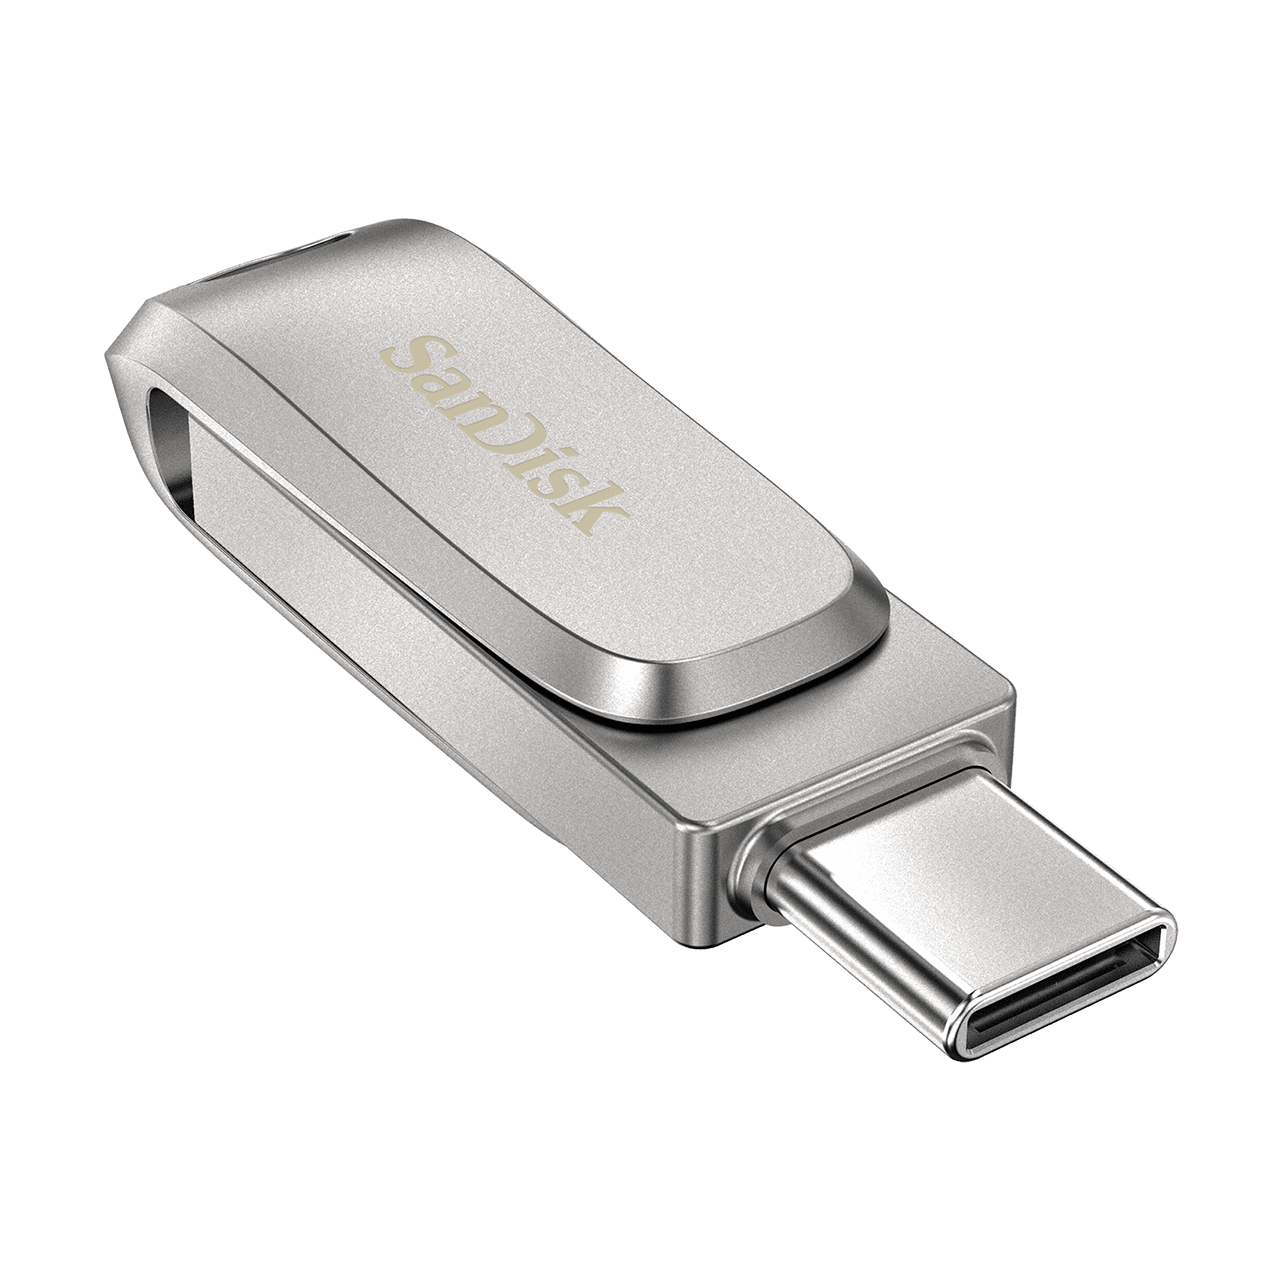 SanDisk Ultra Dual Drive Luxe USB-C 128GB